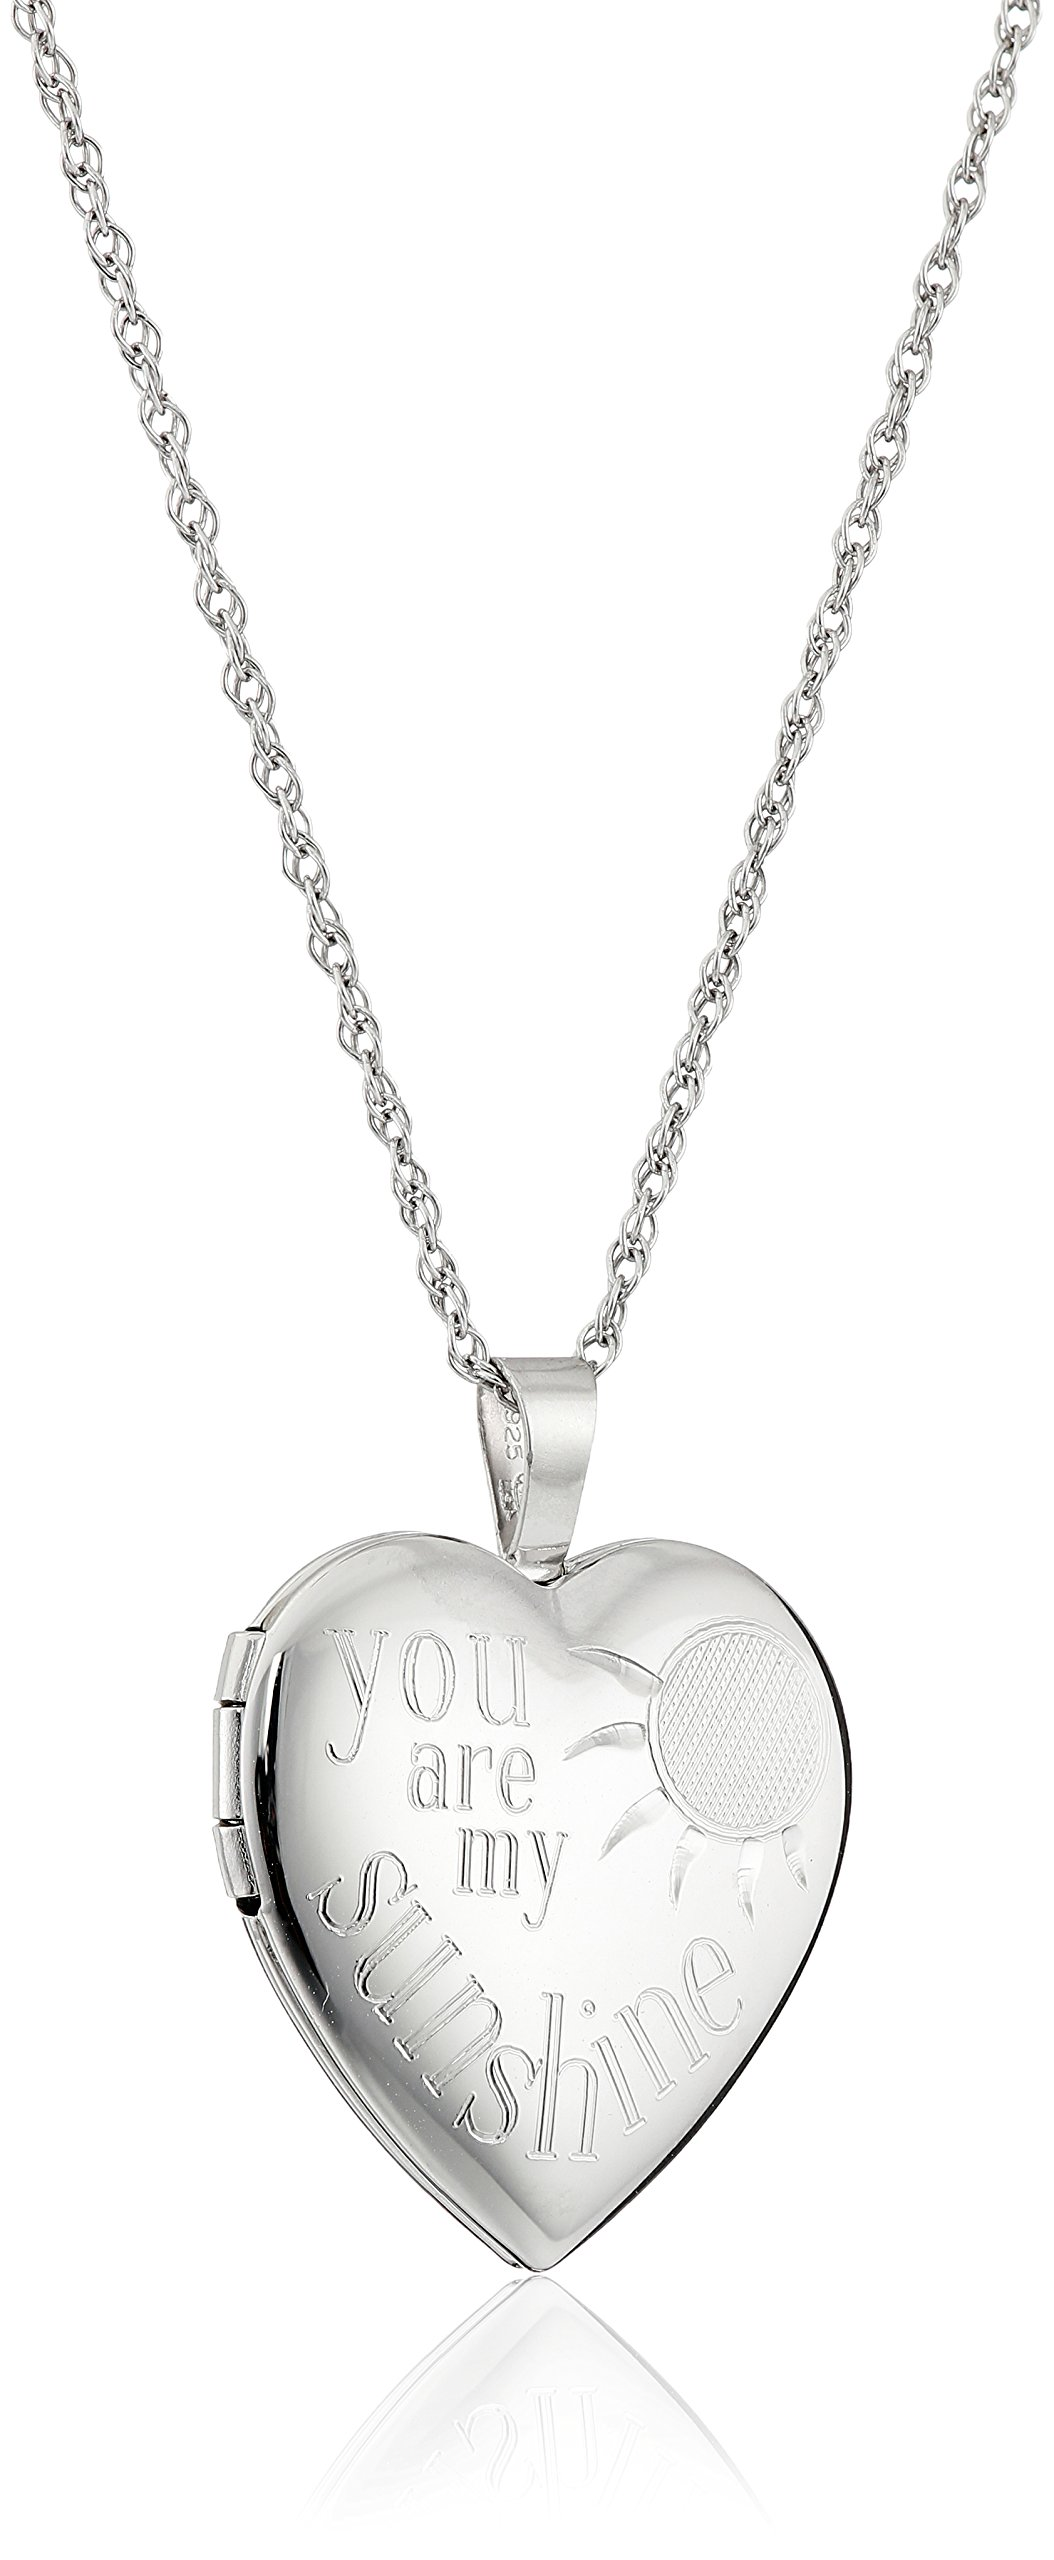 Sterling Silver Heart ''You Are My Sunshine'' Locket Necklace, 18'' by Amazon Collection